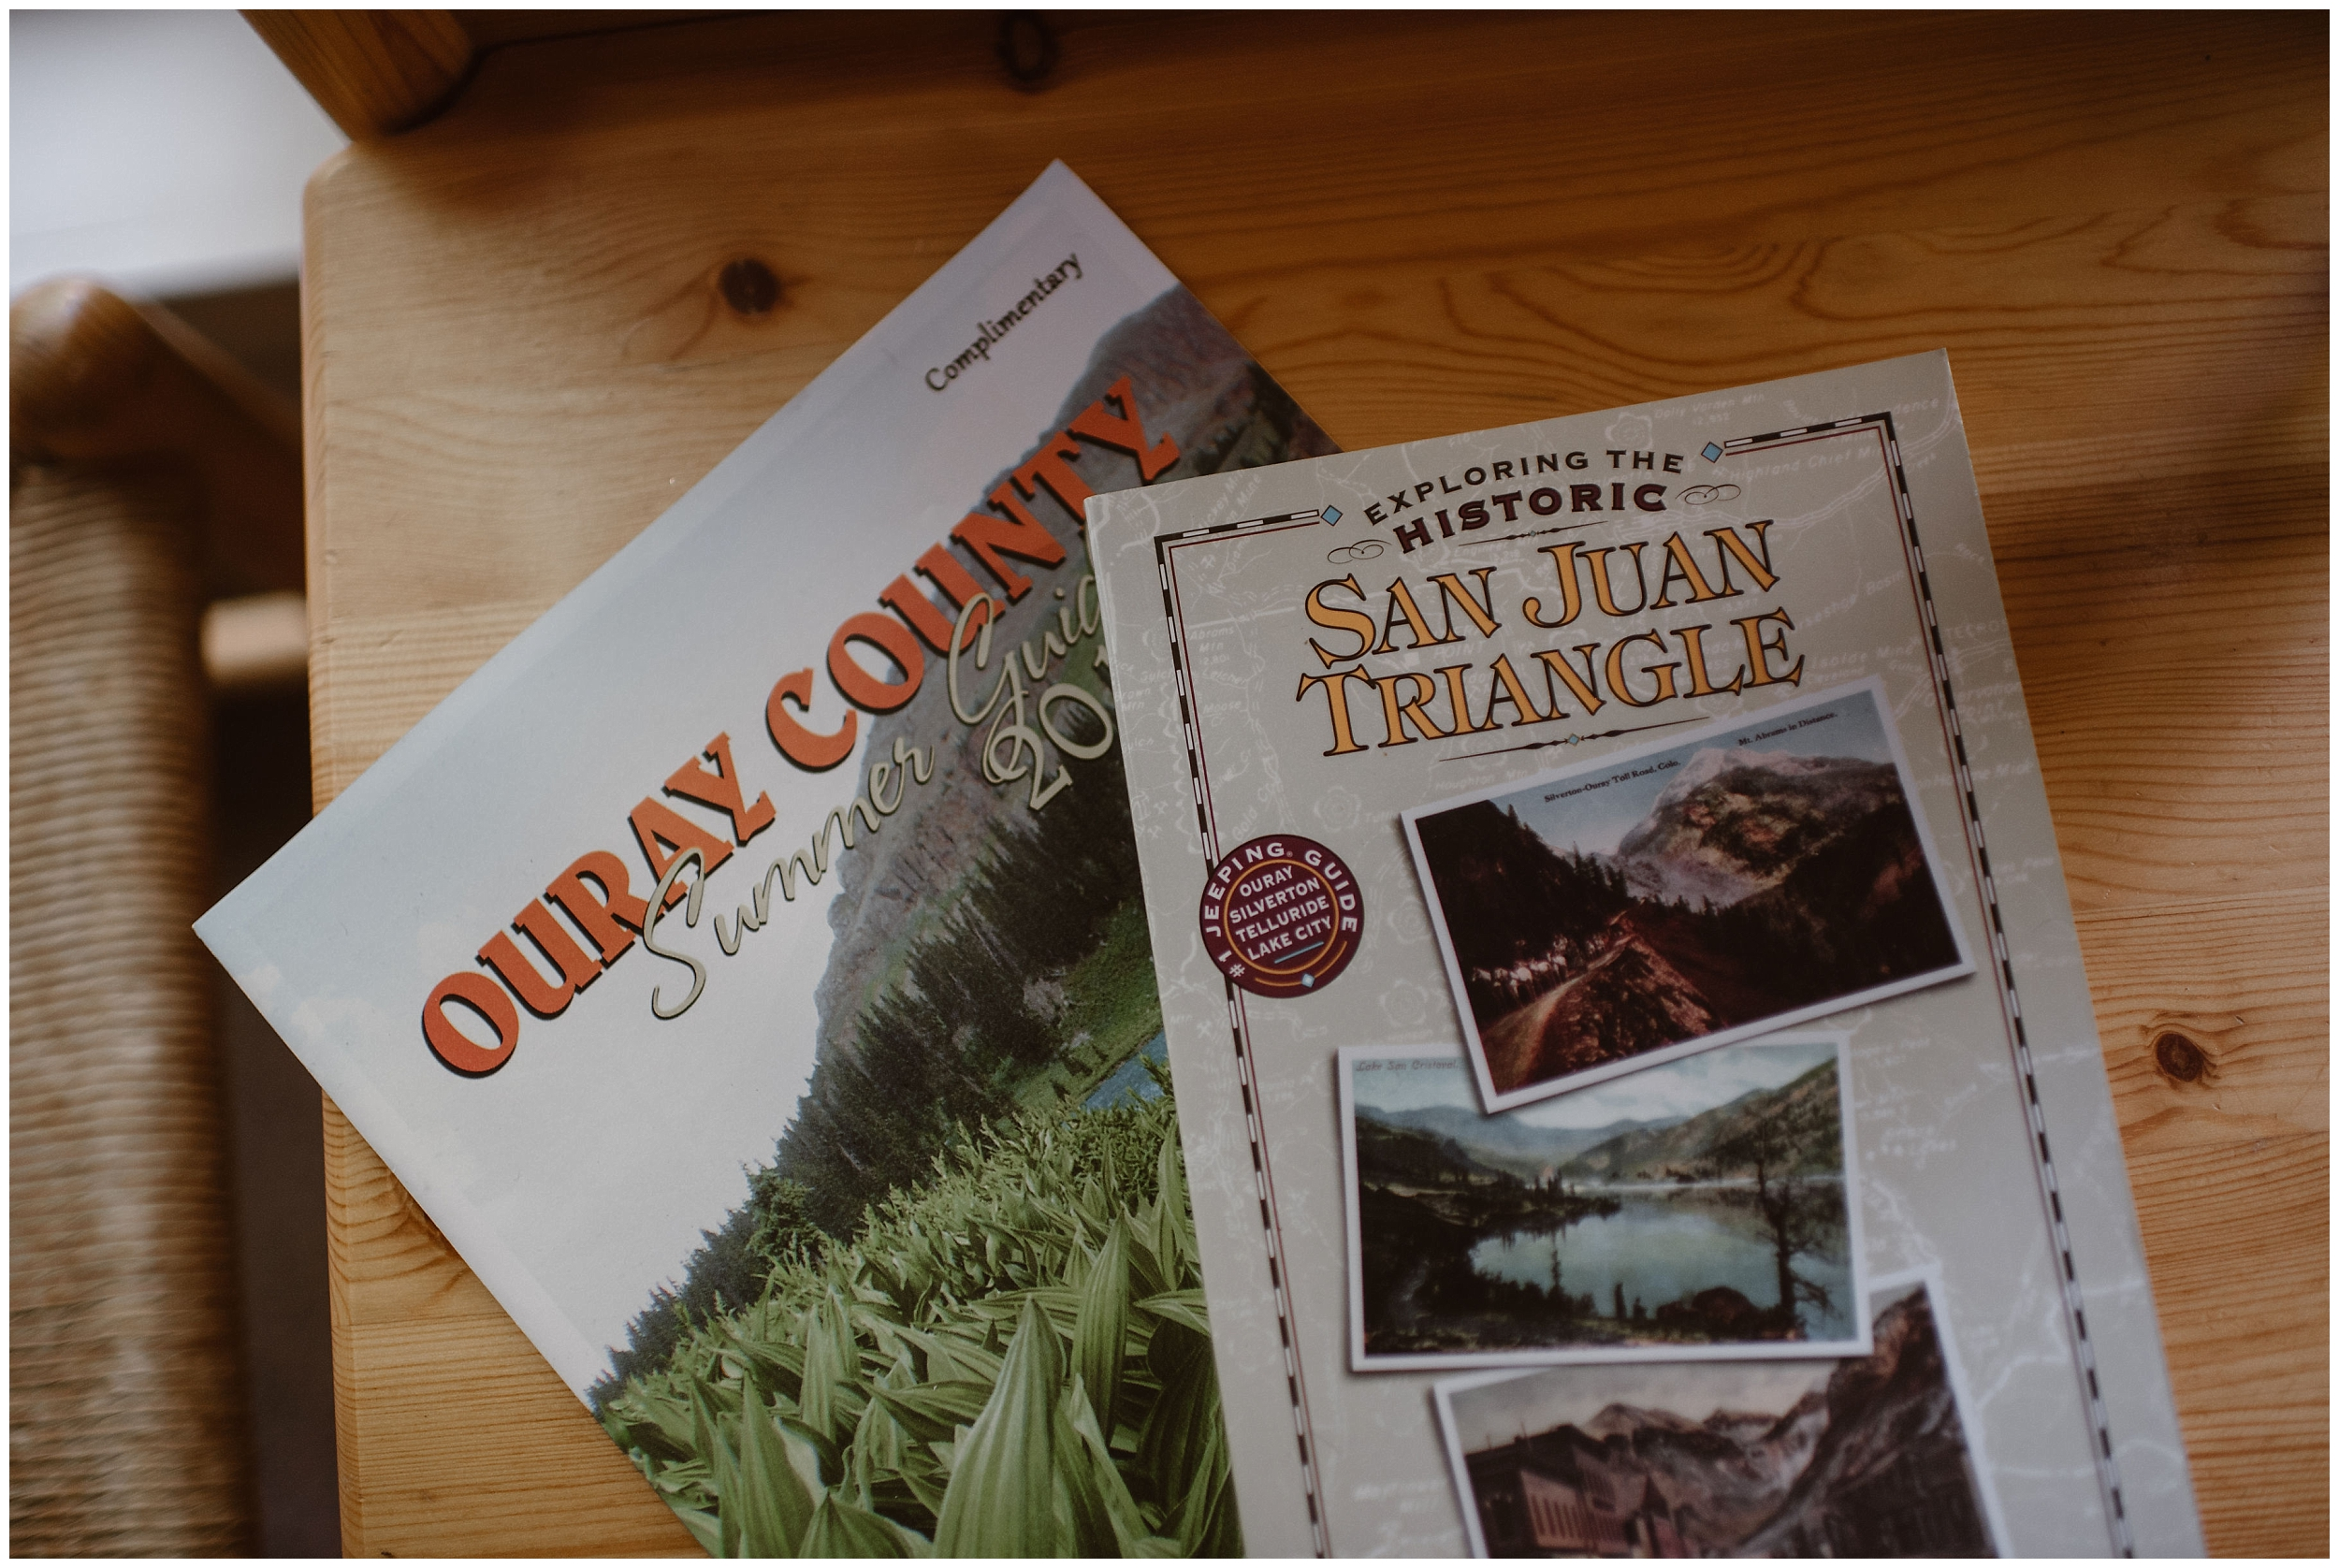 On a light-wood table lays a pamphlet for Ouray County and for exploring the San Juan Triangle. These items were found in a rented VRBO cabin (that was charming and crooked) that Ernie and Brian, the couple getting married, chose for their Colorado mountain wedding.